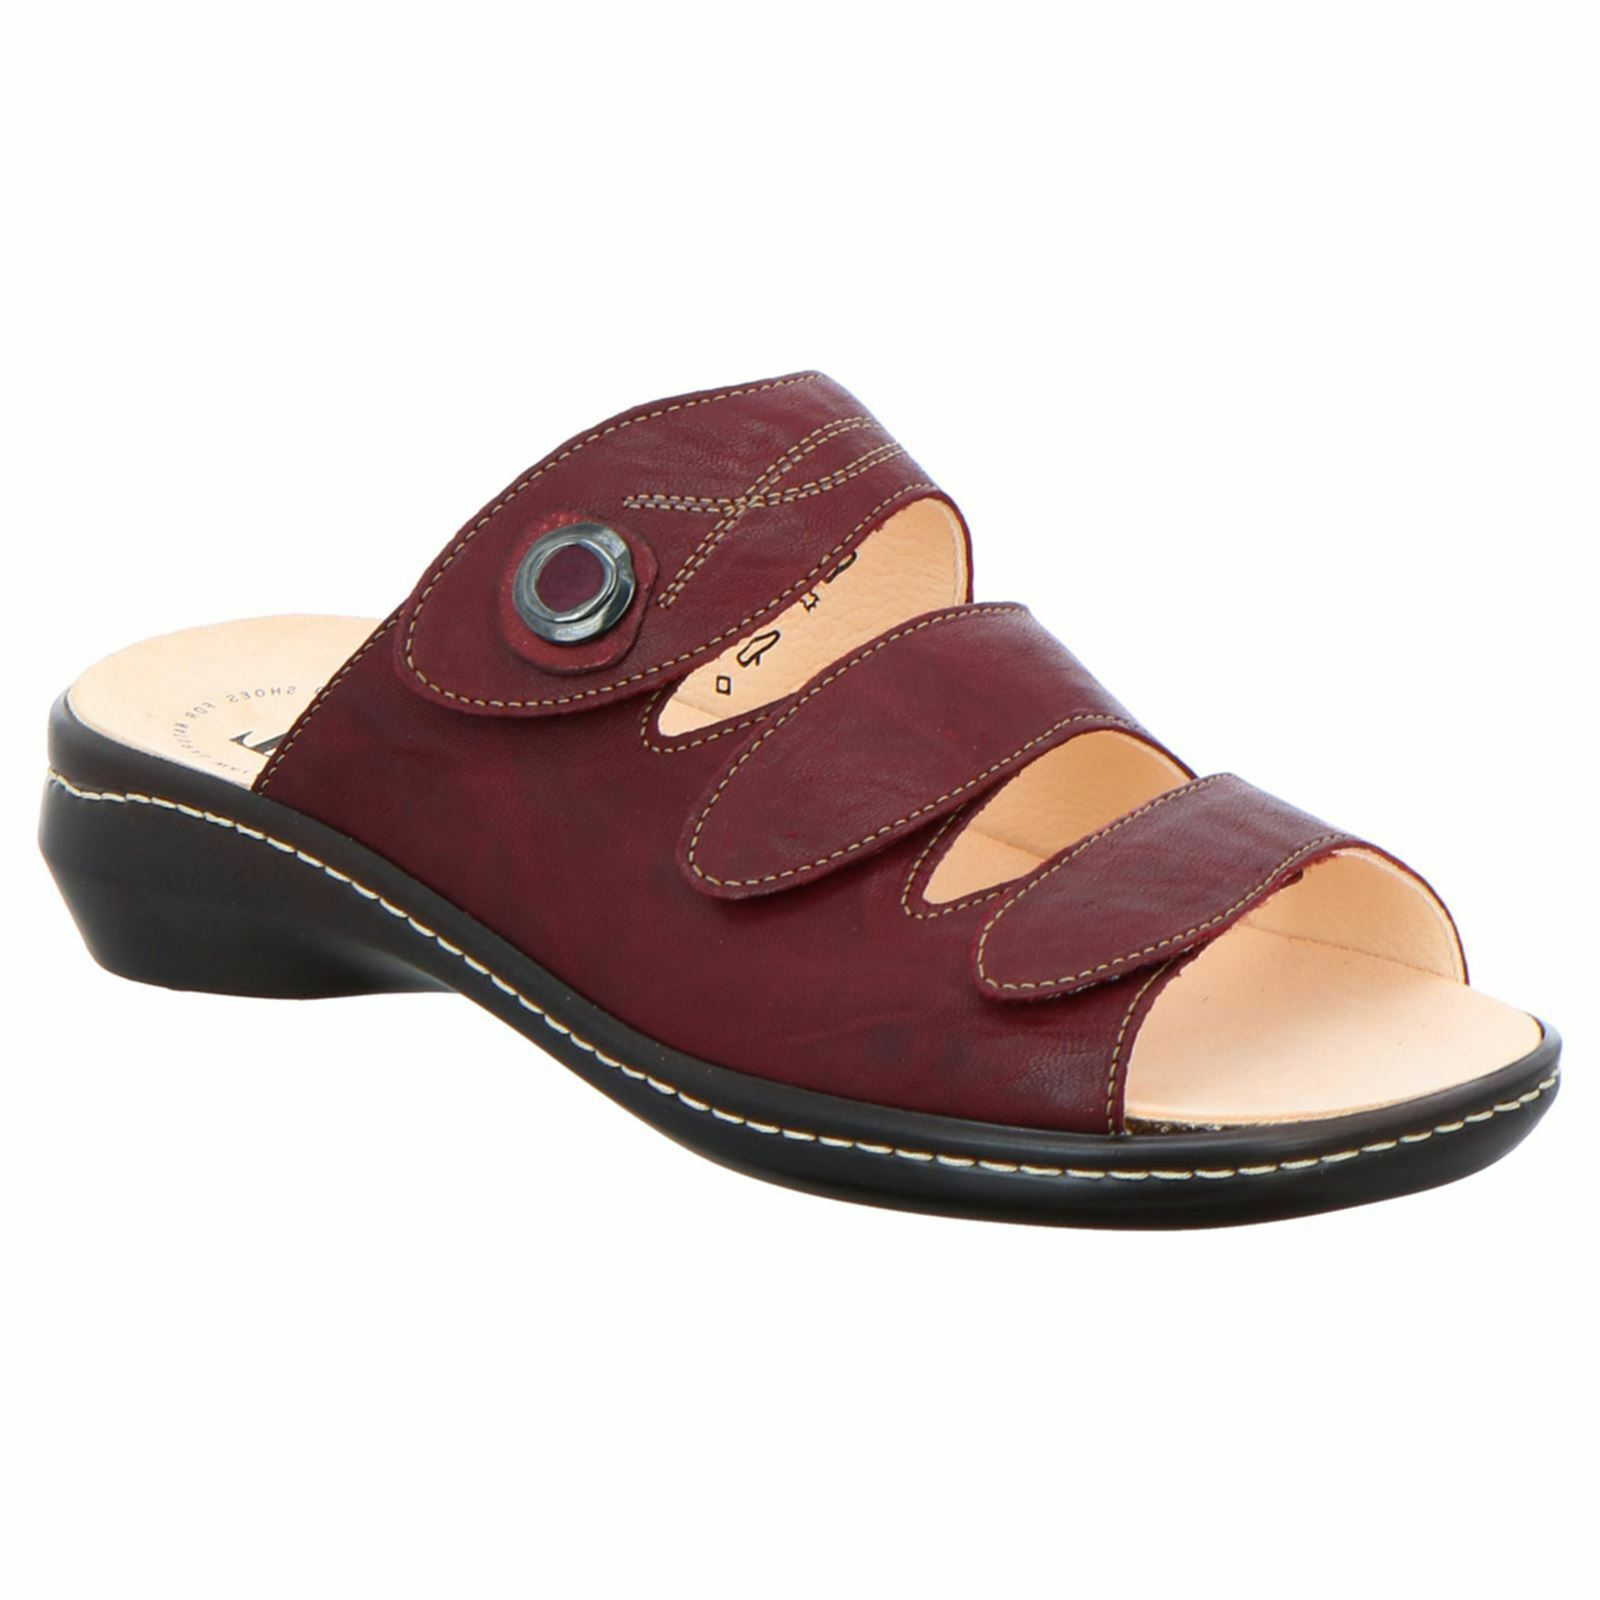 Think Camilla 88424 rot damen Leather Open-Back 3-Strap Slide Sandals